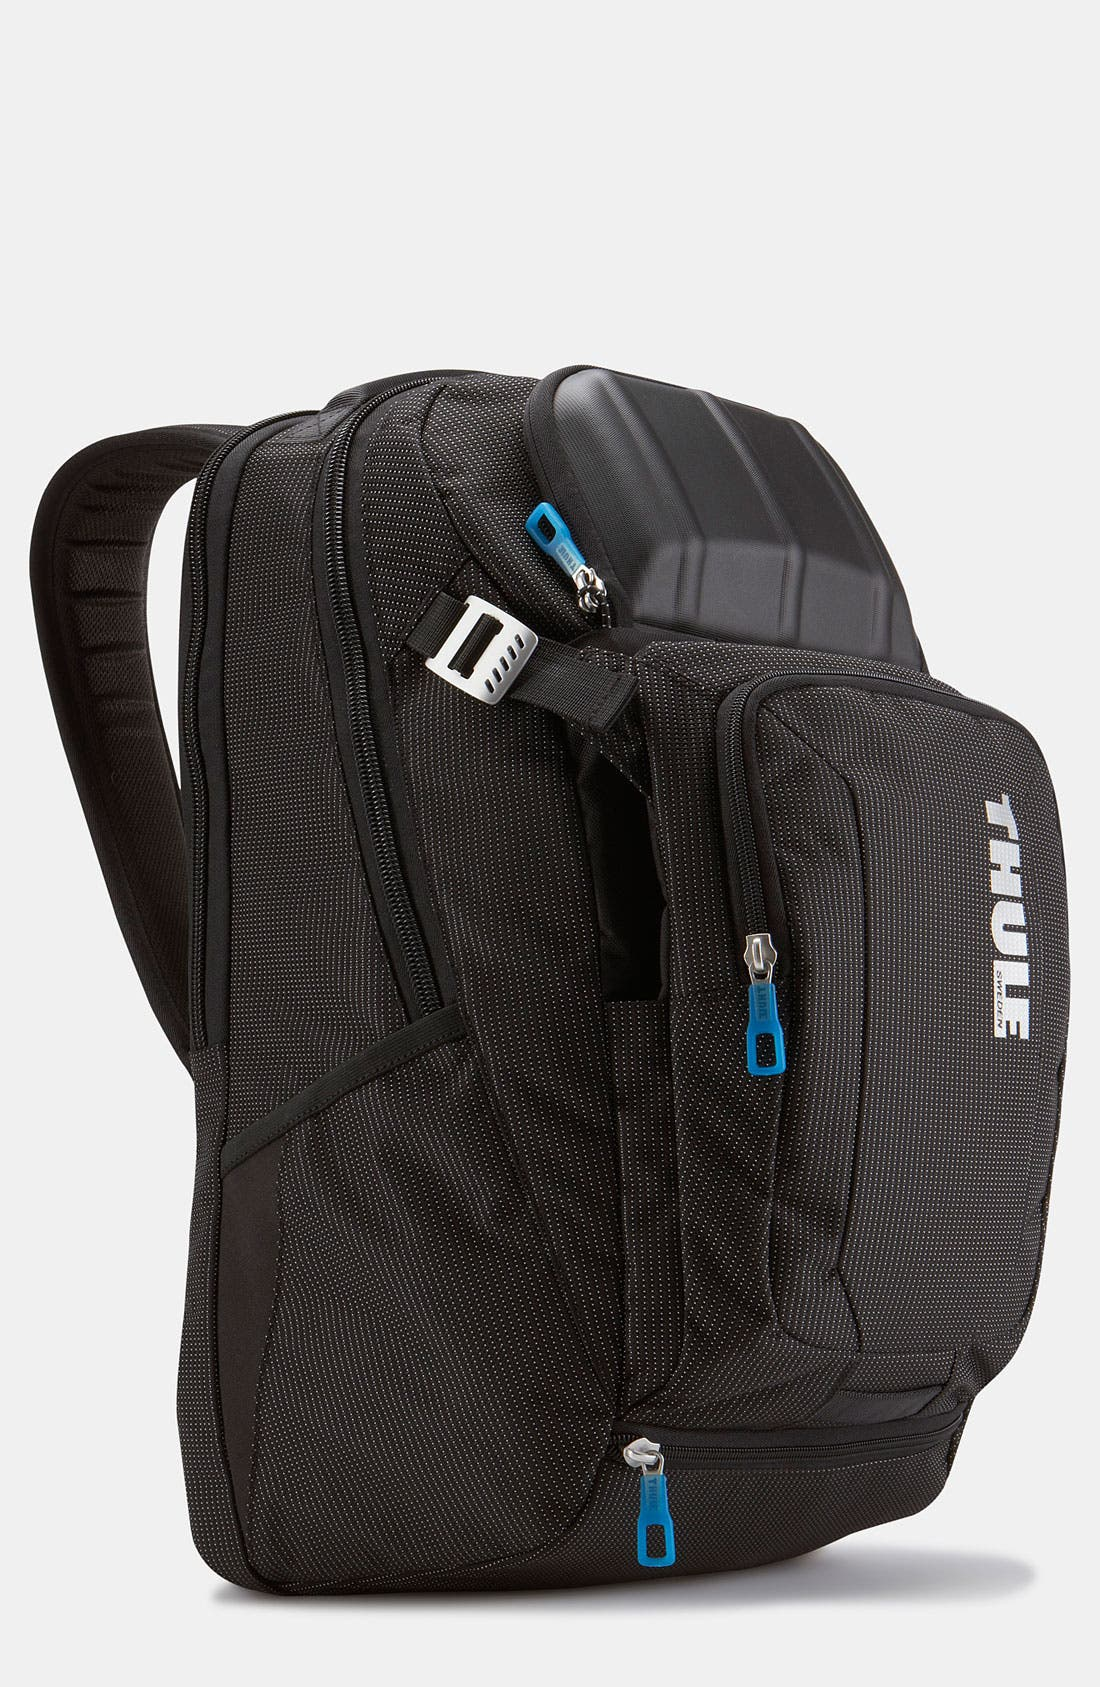 Main Image - Thule 'Crossover' Backpack (32L)